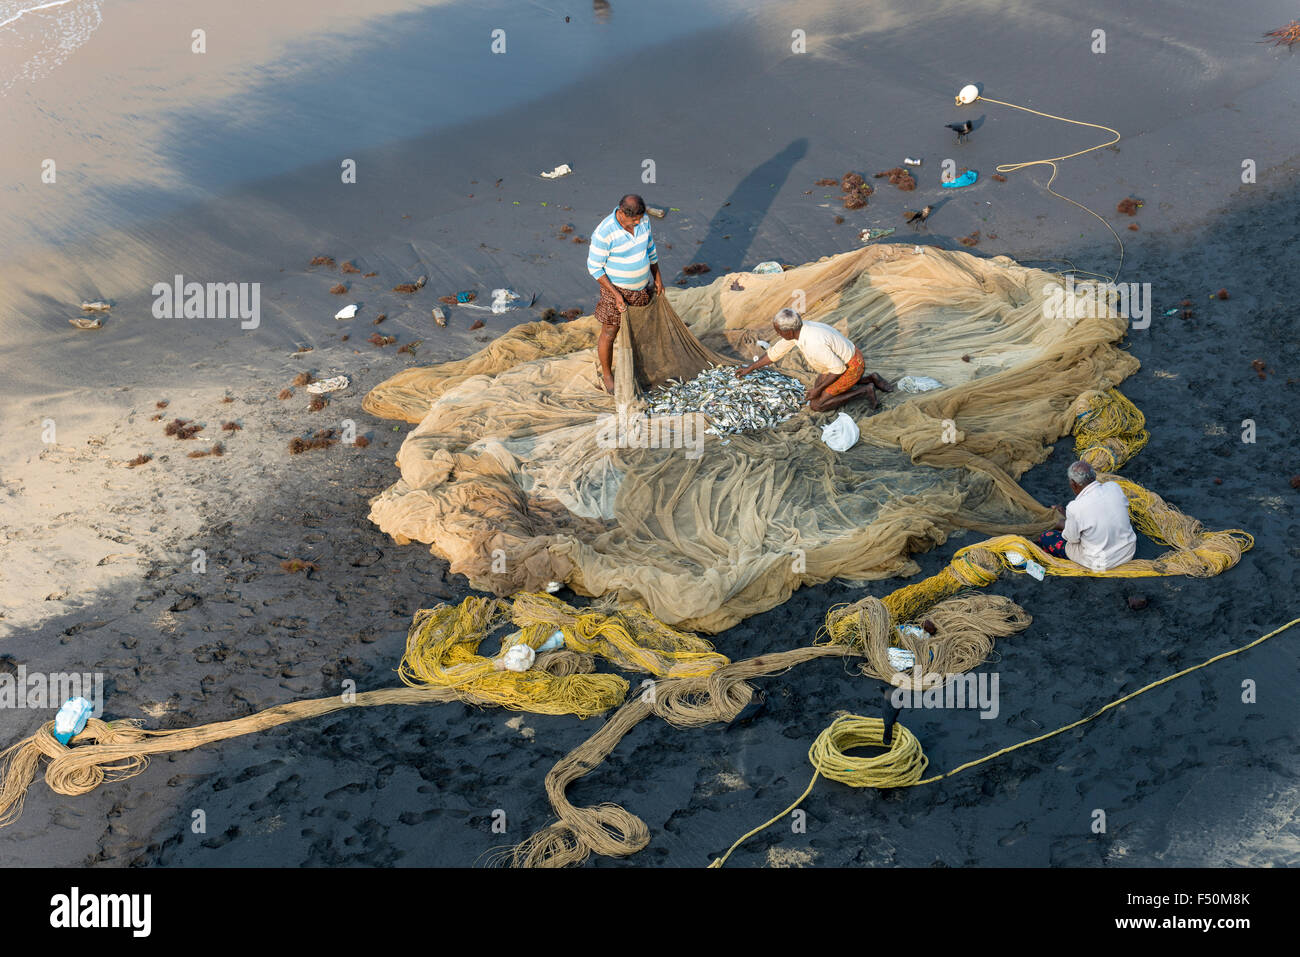 Two fishermen are inspecting the fishing nets after pulling them out onto the beach - Stock Image